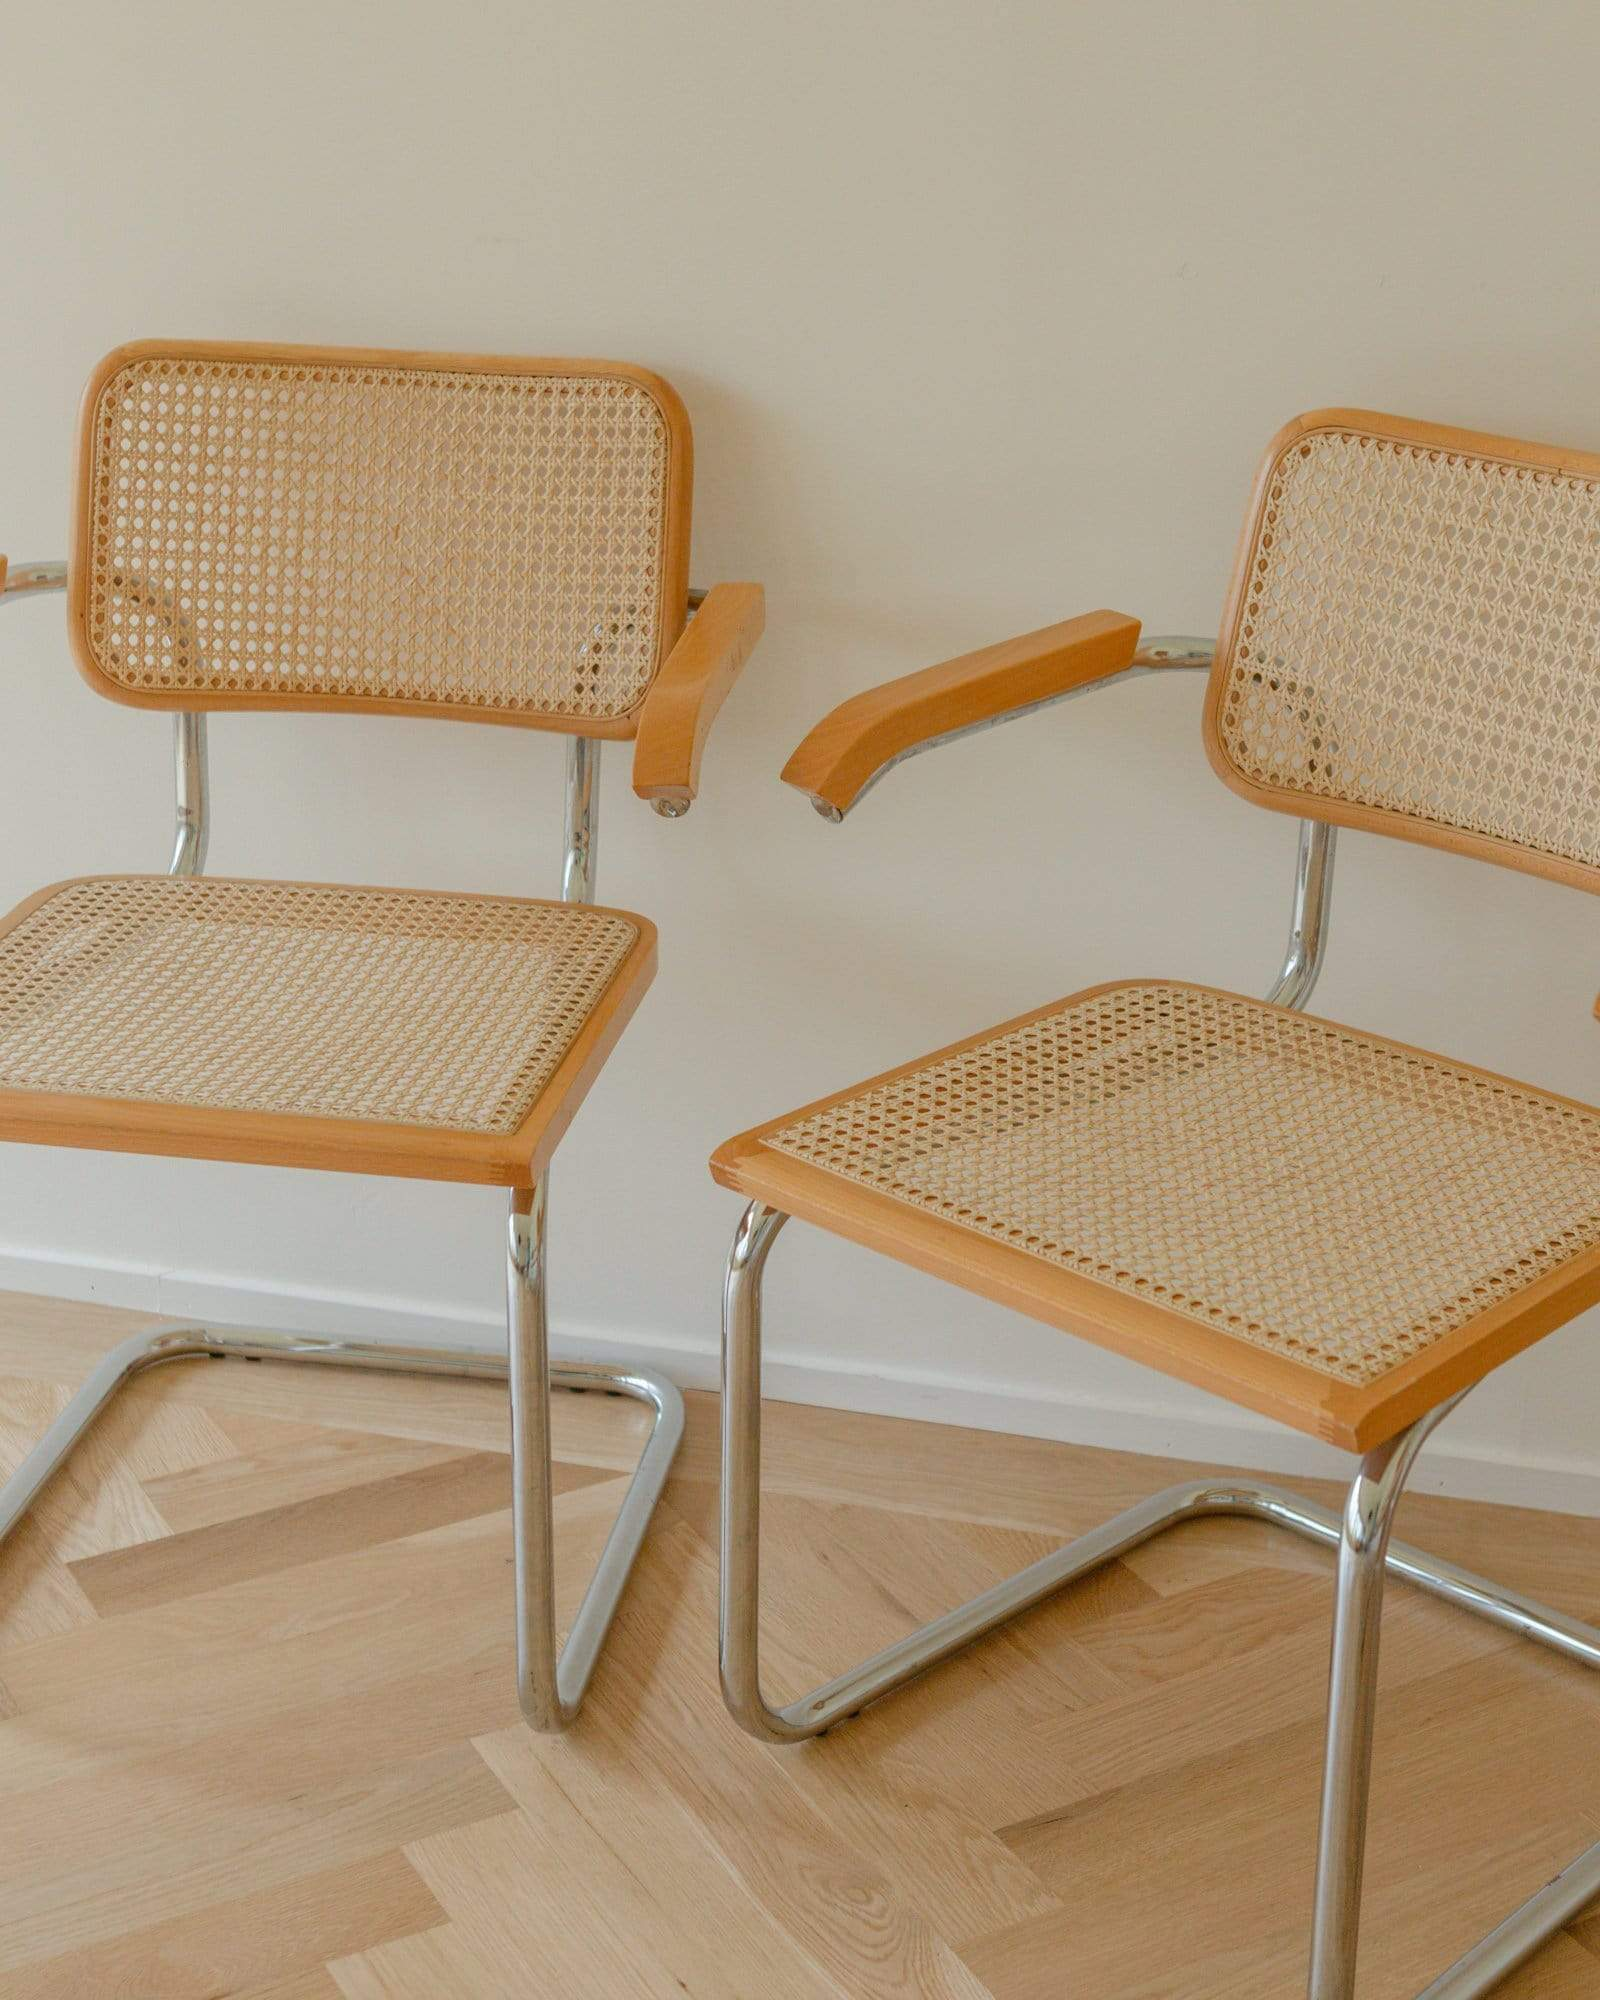 Marcel Breuer Bauhaus Cesca Armchairs, Manufactured in Italy, Set of 2 or Set of 4 - Nice Vintage Things